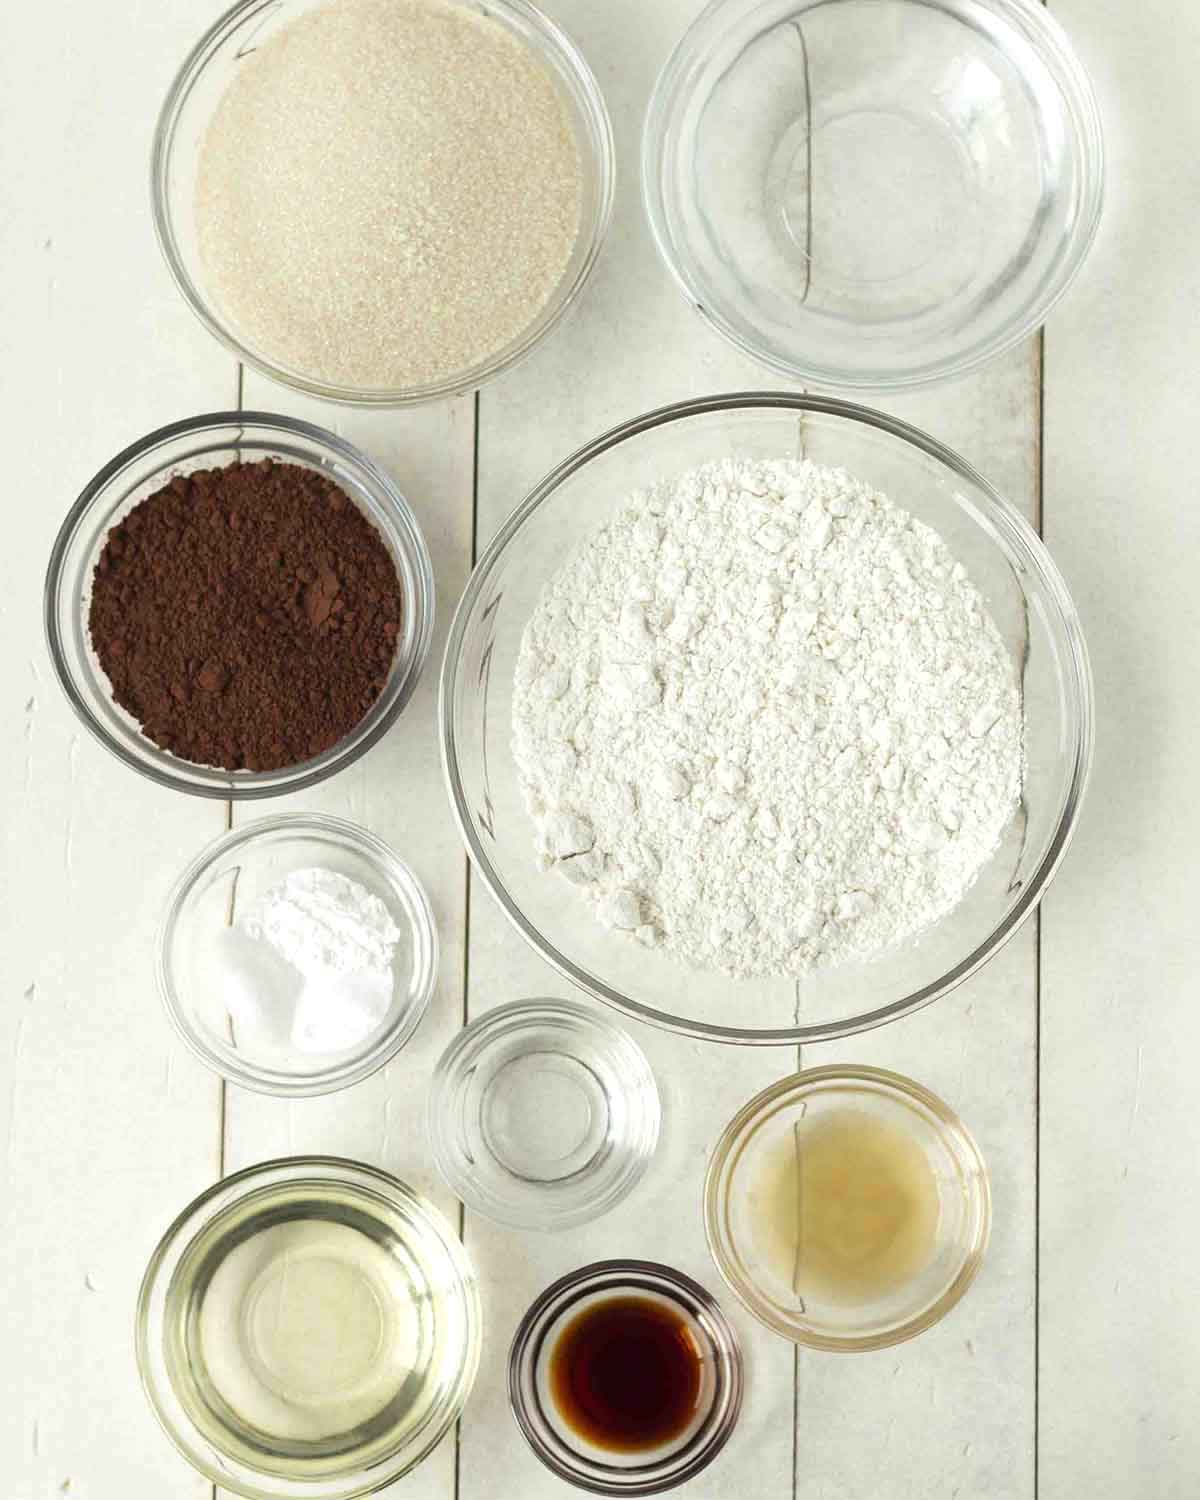 Overhead shot of the ingredients needed to make a batch of gluten free peppermint cupcakes.